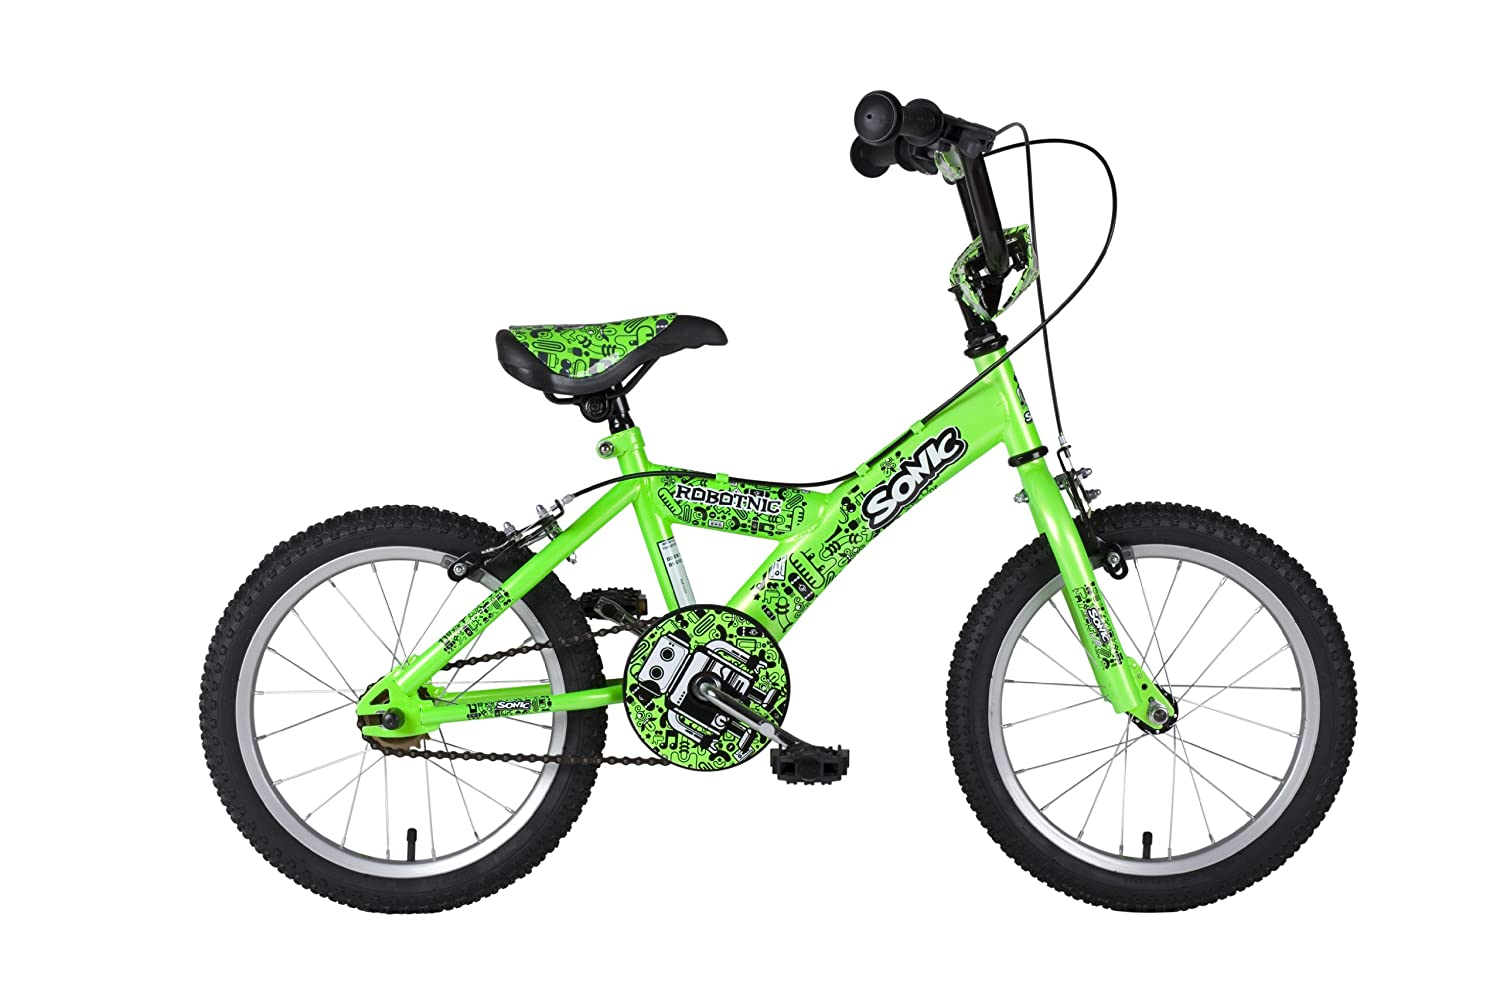 Sonic Robotnic Boys Junior 16 inch wheel Bike - Green: Amazon.co.uk ...